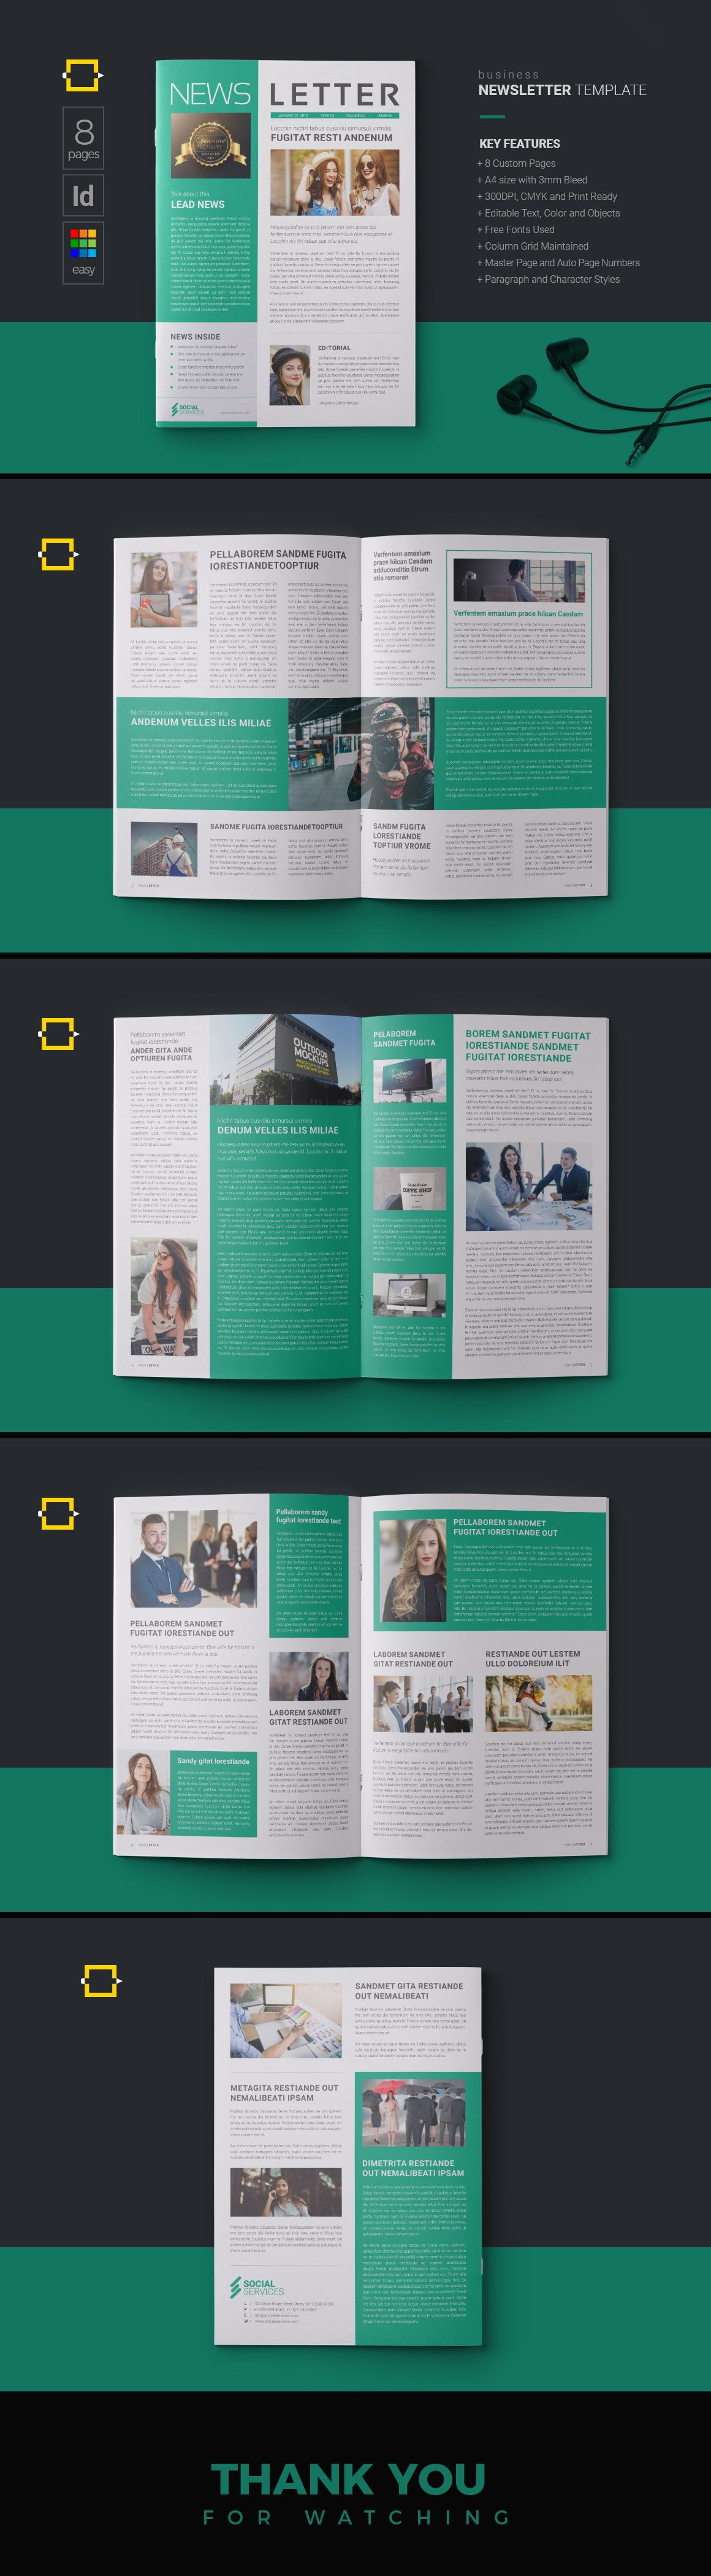 Design Layout Newsletter Templates